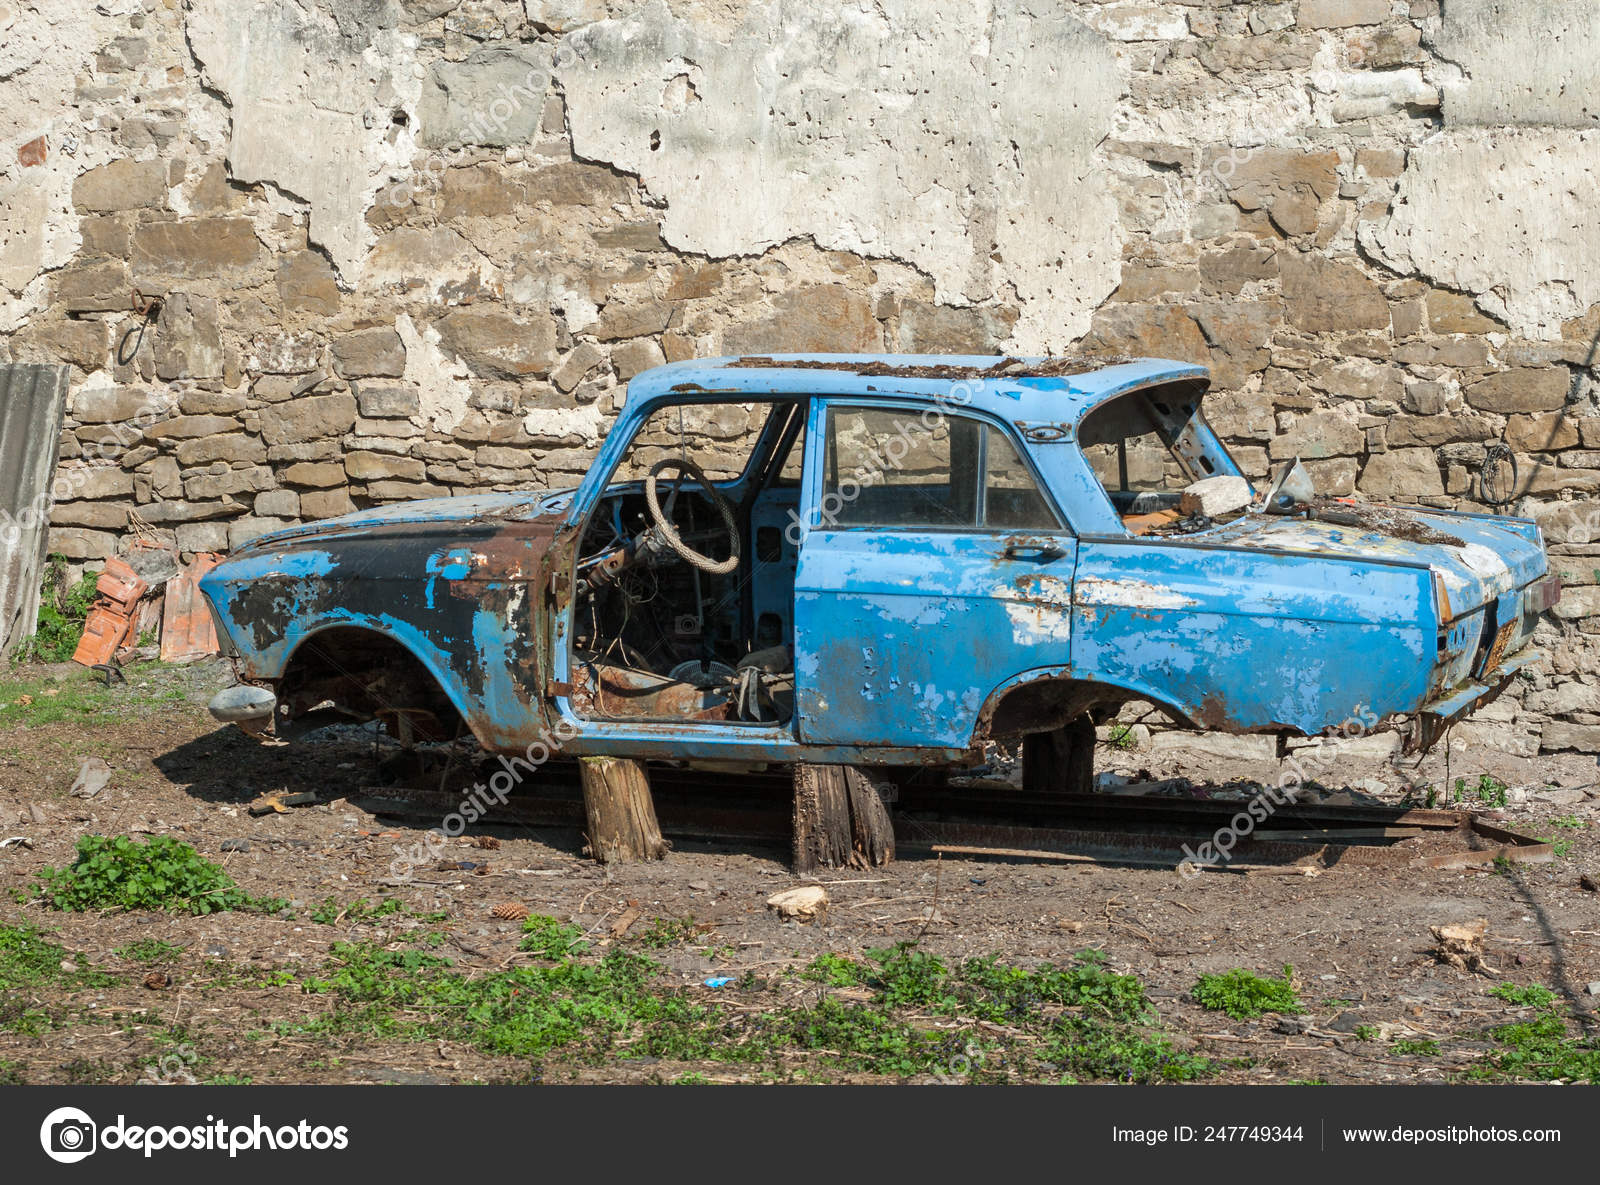 Old wrecked car — Stock Photo © alexsol #247749344